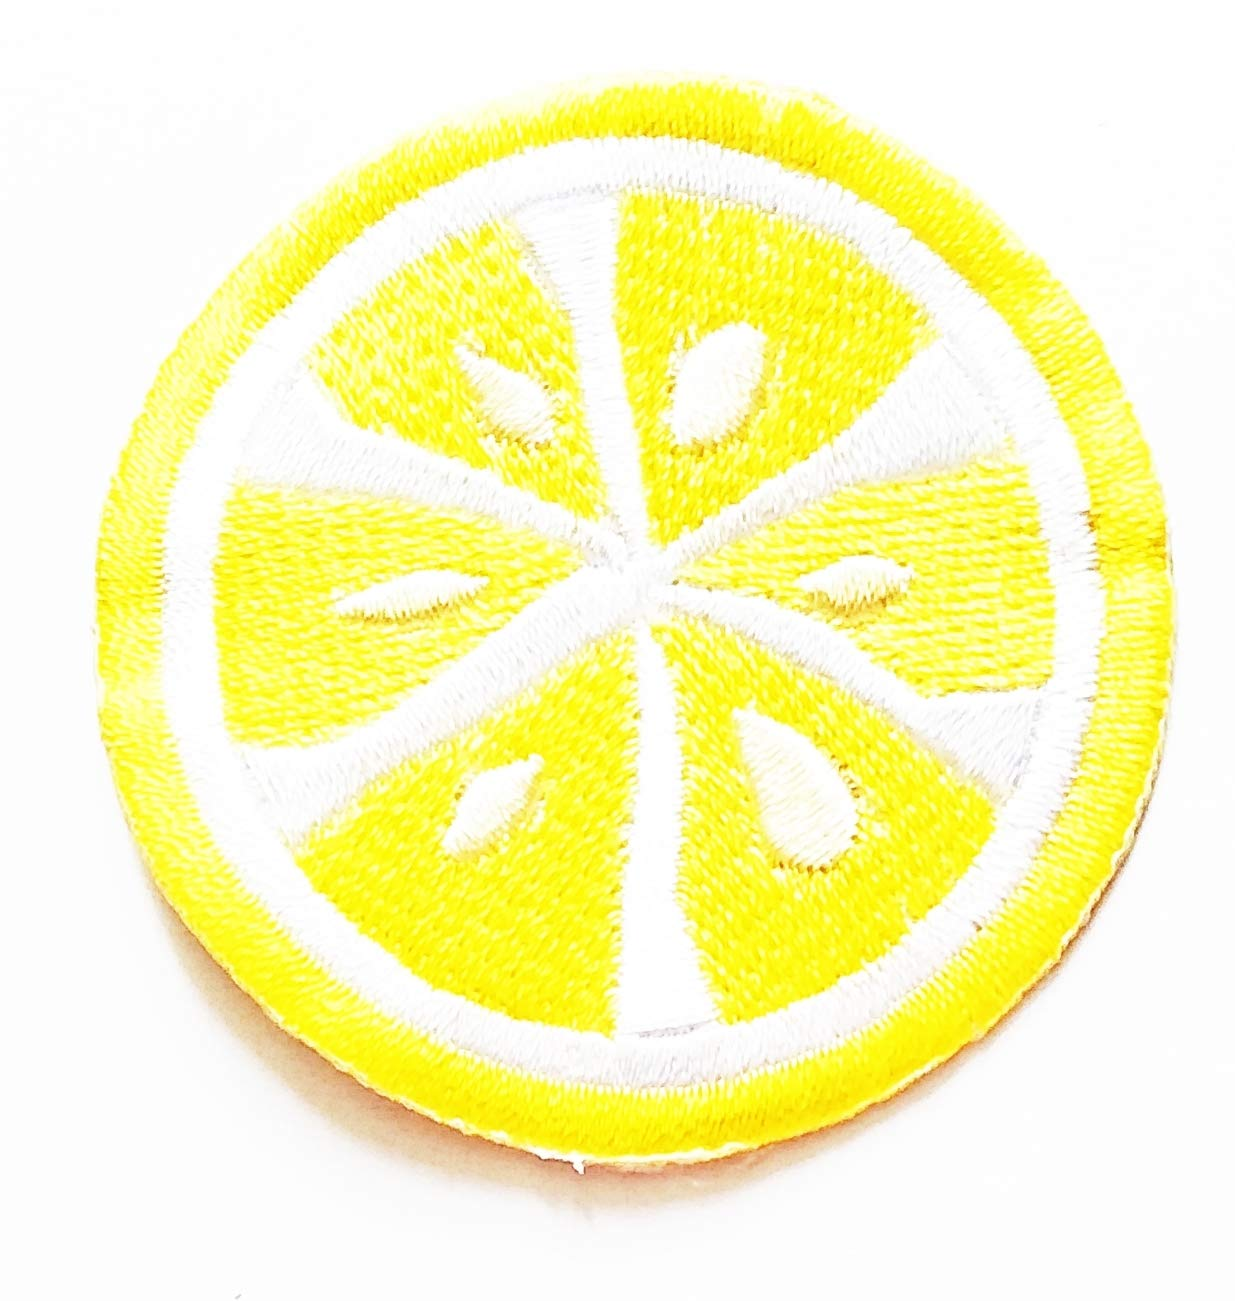 Nipitshop Patches Cute Chic Chic Yellow Sour Lemon Fruit Cartoon Kids Embroidered Iron On Patch for Clothes Backpacks T-Shirt Jeans Skirt Vests Scarf Hat Bag